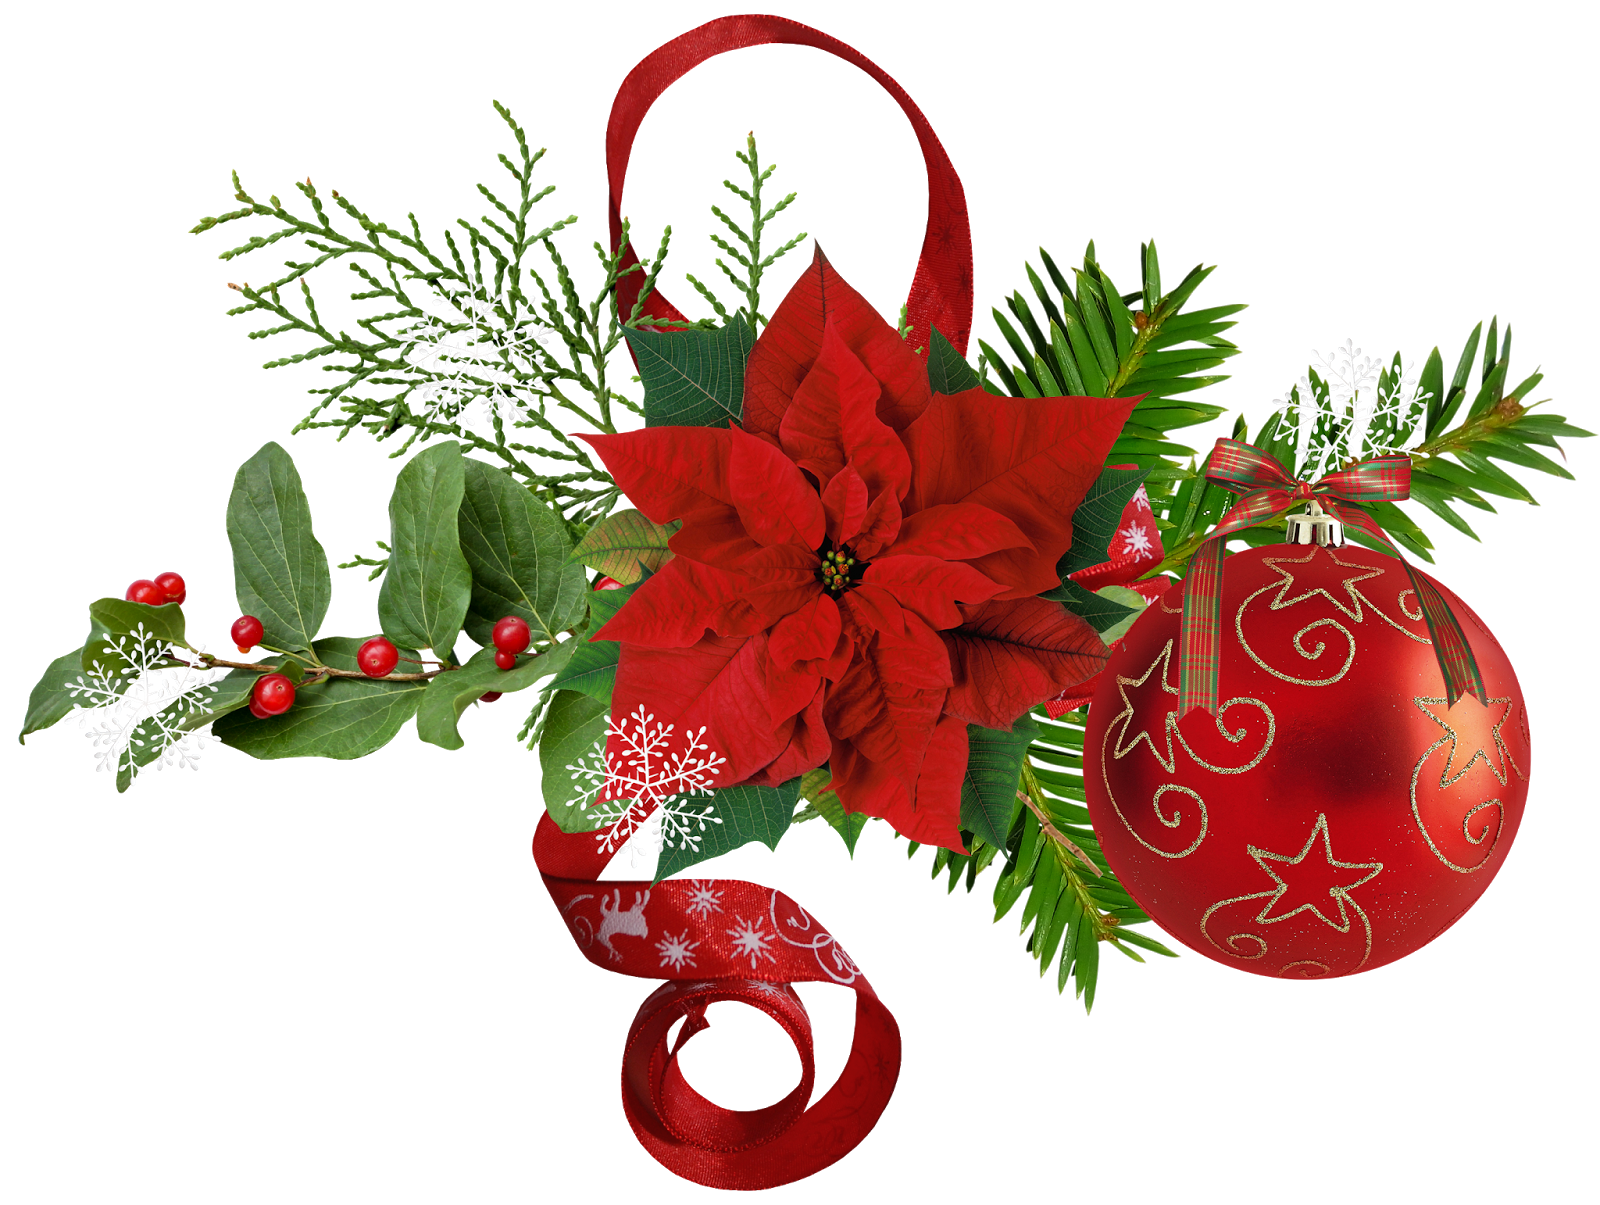 Navidad 2016 png. Marcos gratis para fotos jpg freeuse download